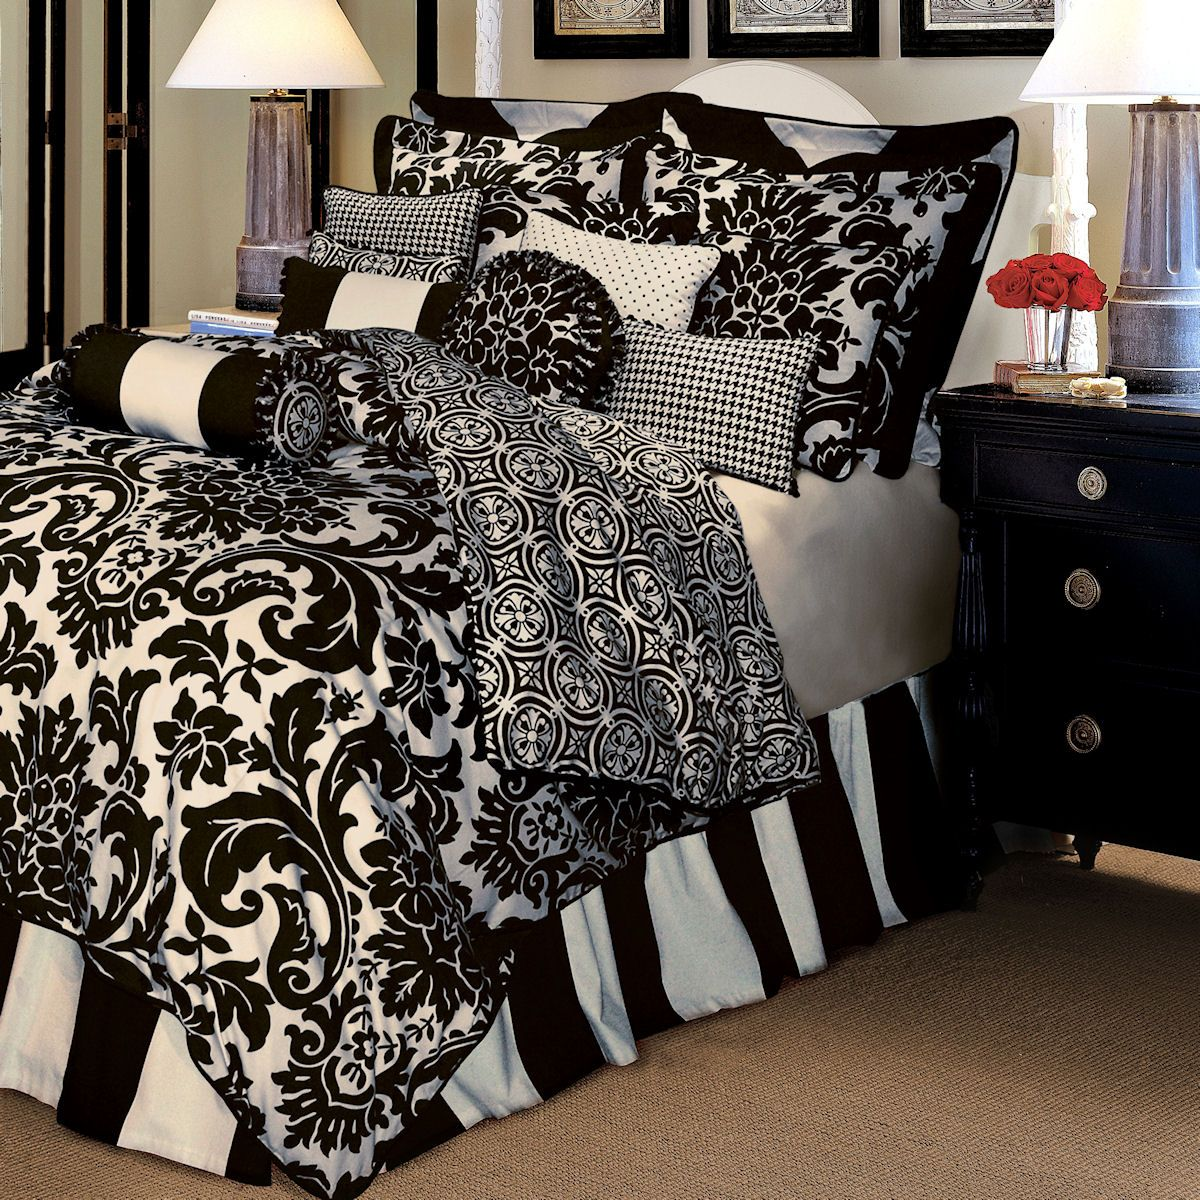 Best Image Detail For Comforter Sets Rose Tree Luxury 400 x 300